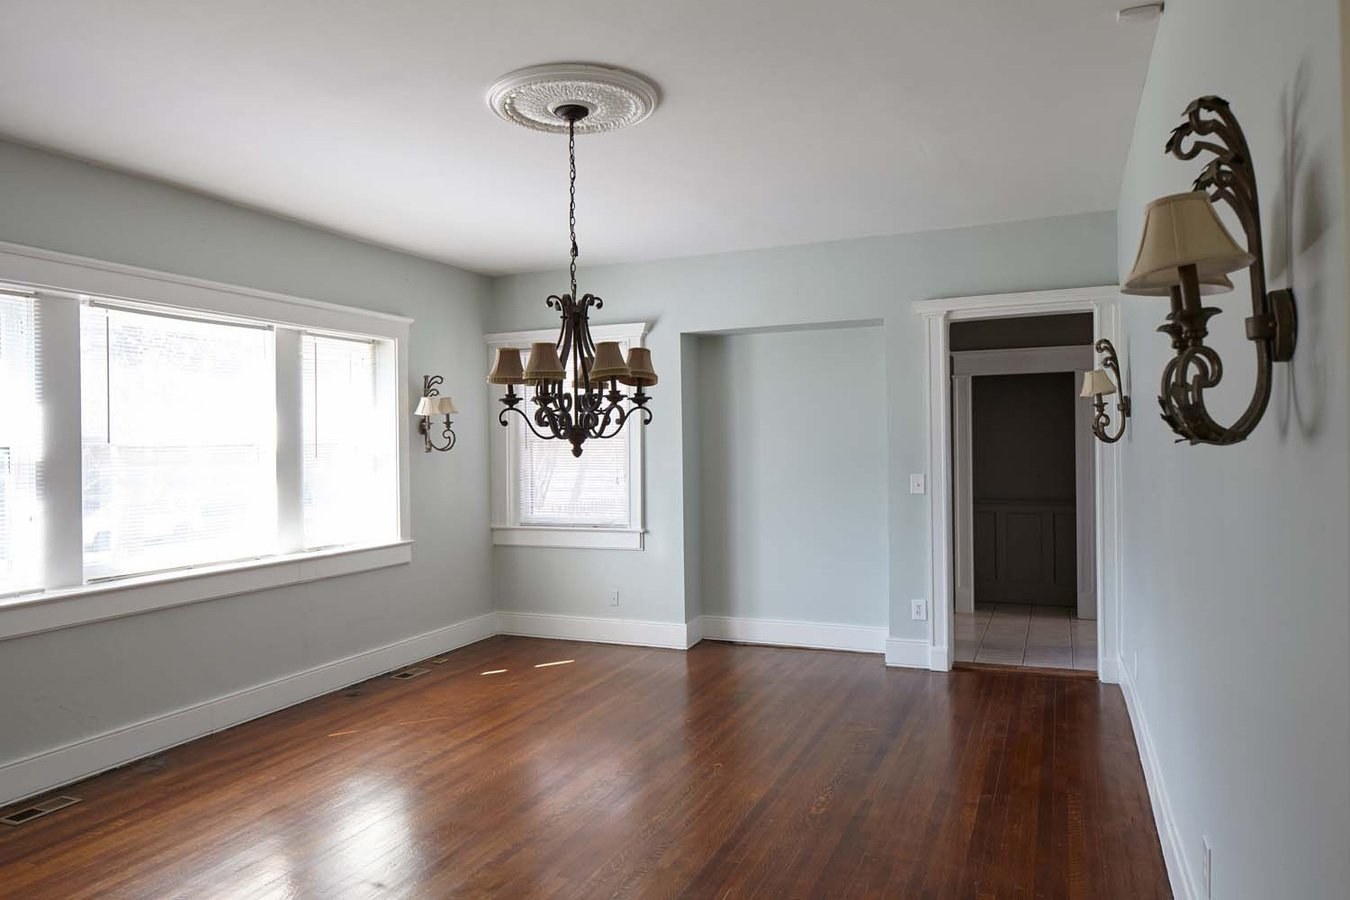 6 Bedrooms 3 Bathrooms Apartment for rent at Victorian House in Kansas City, MO